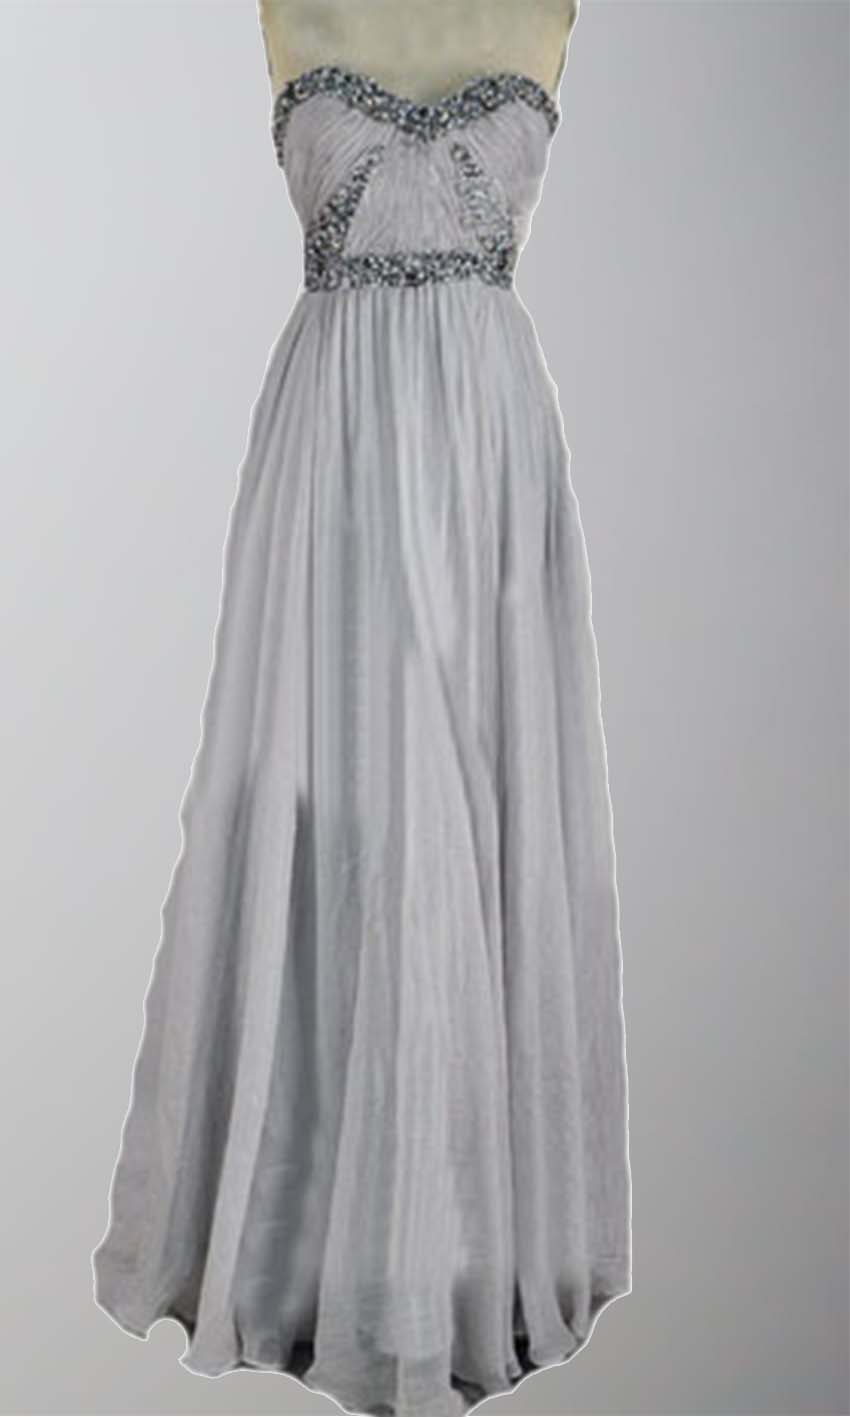 Gray Long Sweetheart Sequin Ceremony Show Dresses KSP303 [KSP303] - £103.00 : Cheap Prom Dresses Uk, Bridesmaid Dresses, 2014 Prom & Evening Dresses, Look for cheap elegant prom dresses 2014, cocktail gowns, or dresses for special occasions? kissprom.co.uk offers various bridesmaid dresses, evening dress, free shipping to UK etc.